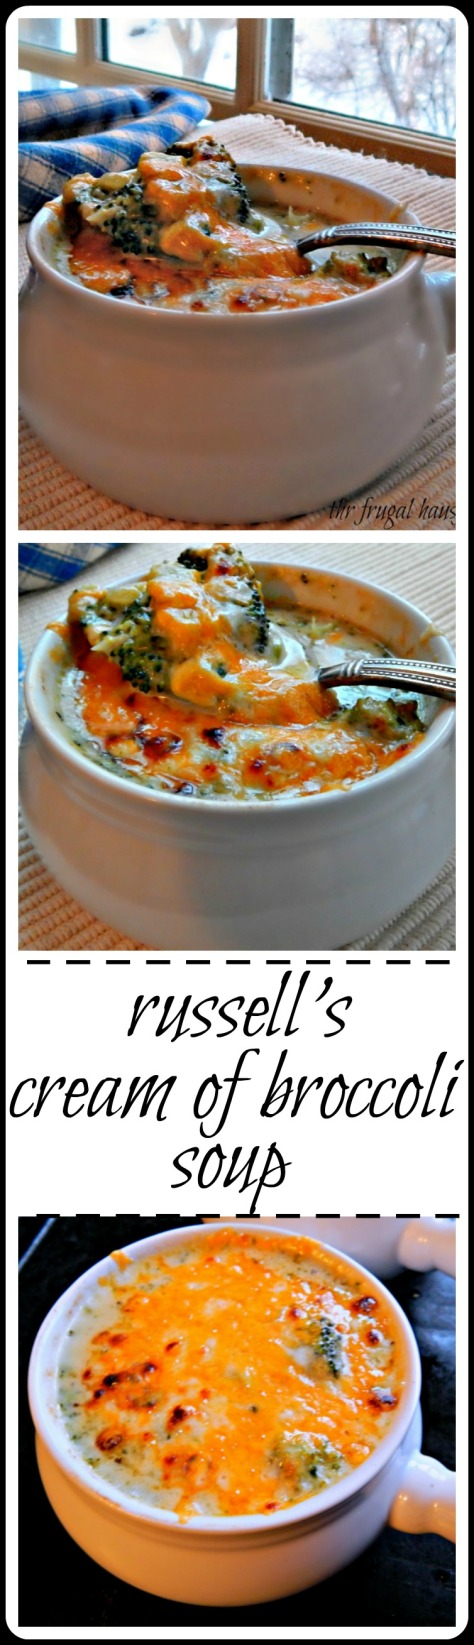 "Russell''s Cream of Broccoli - a delicate soup with a cheddar ""raft"" broiled on top"